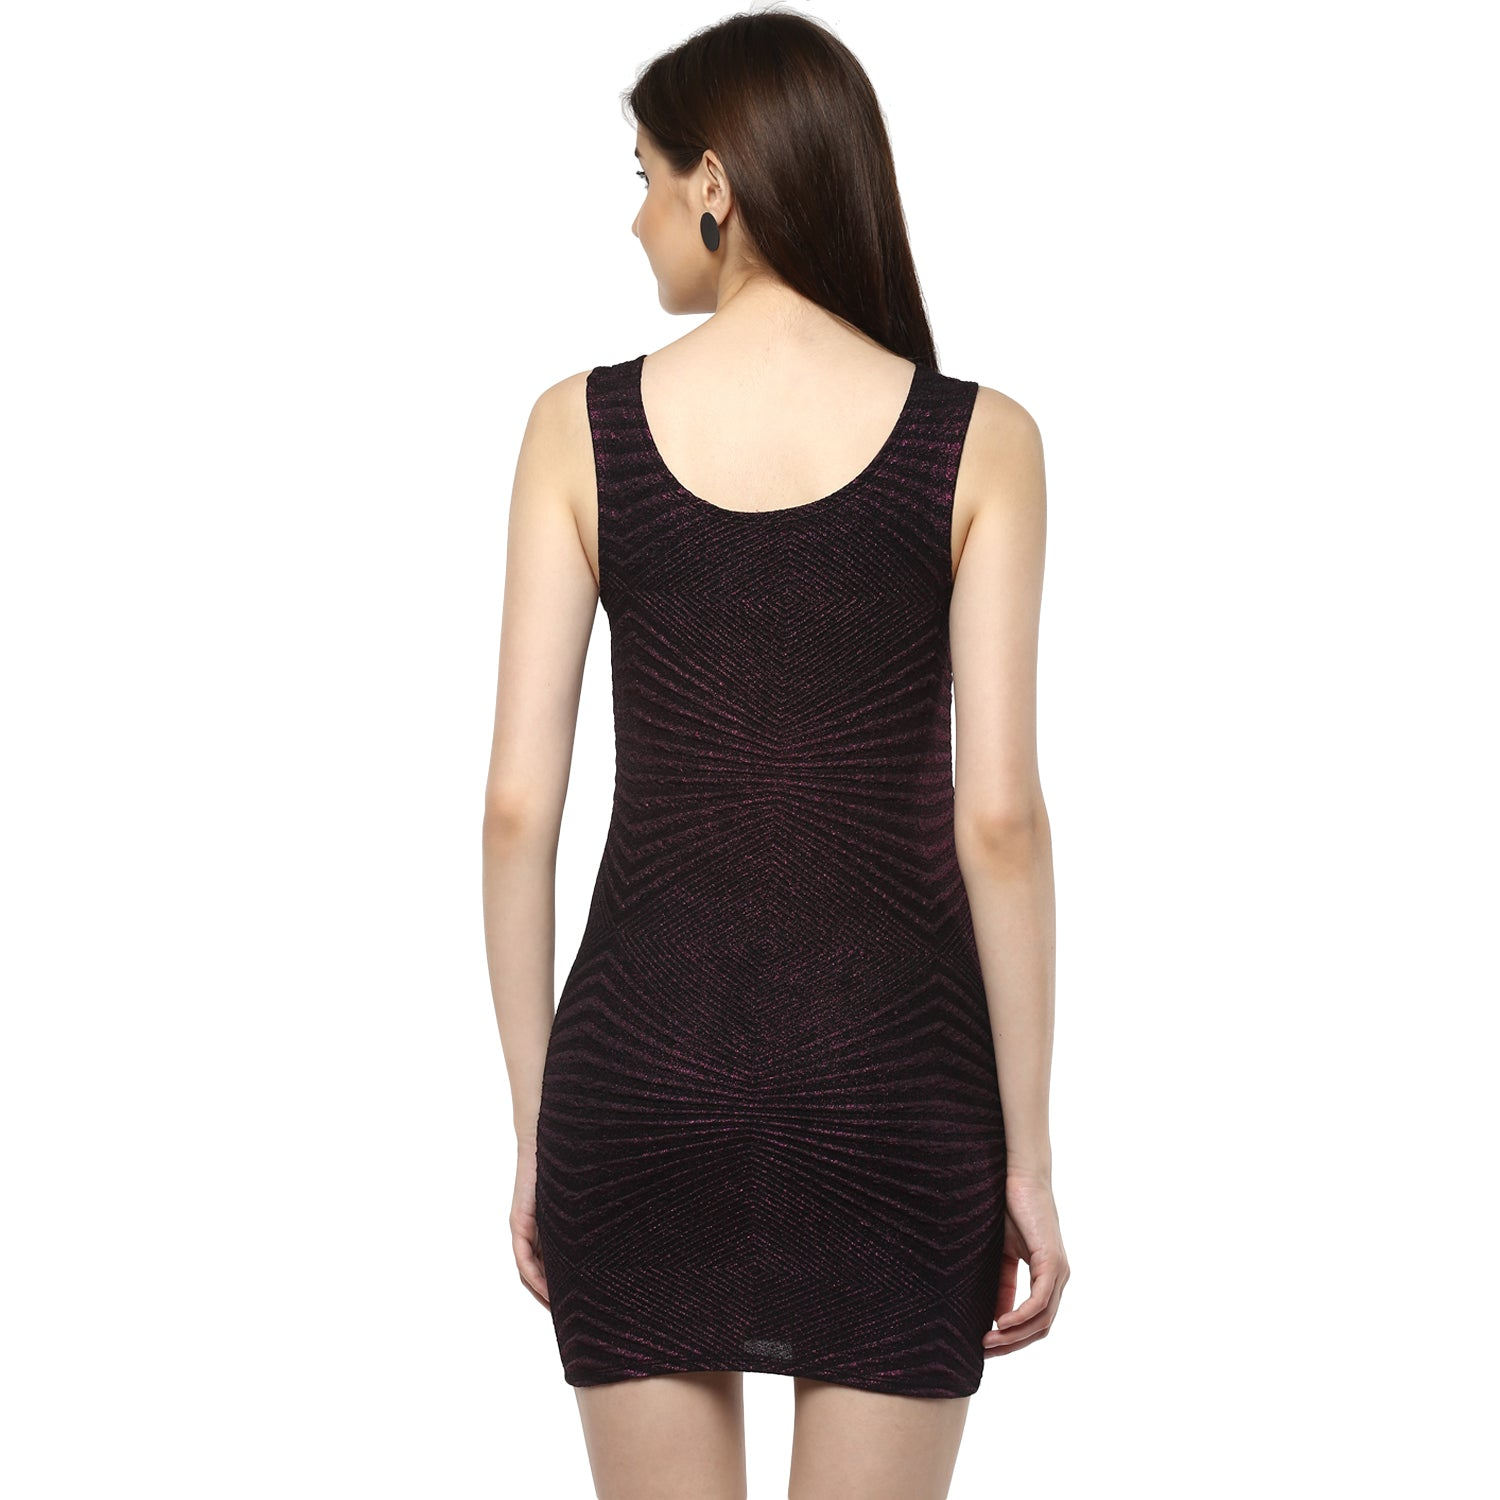 Jaune Black Pink Shimmery Sheath Dress